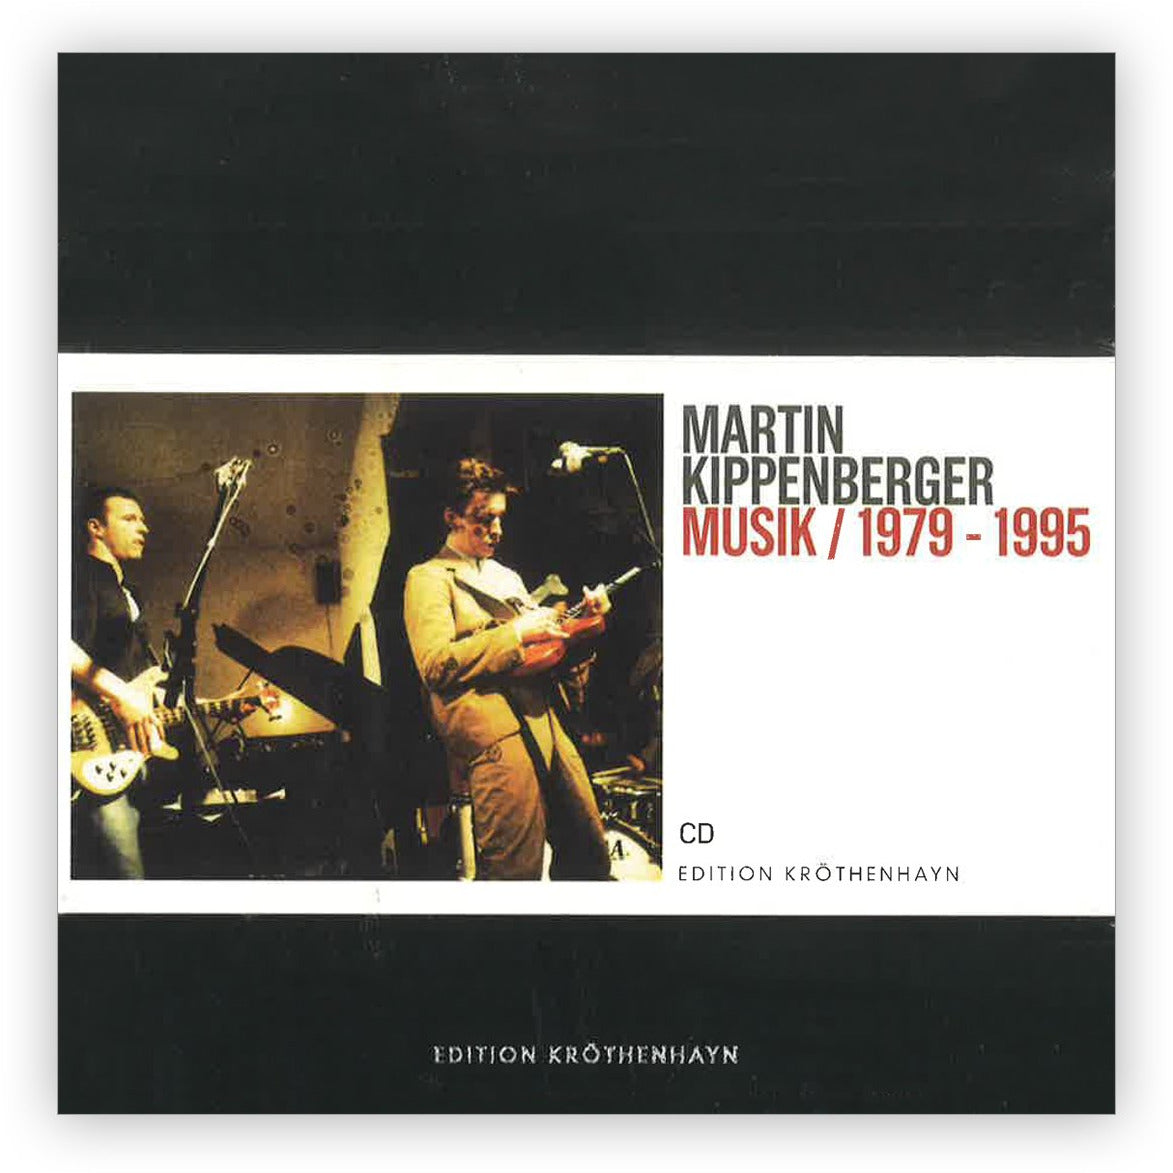 Martin Kippenberger: Musik / 1979 1995 Limited Edition